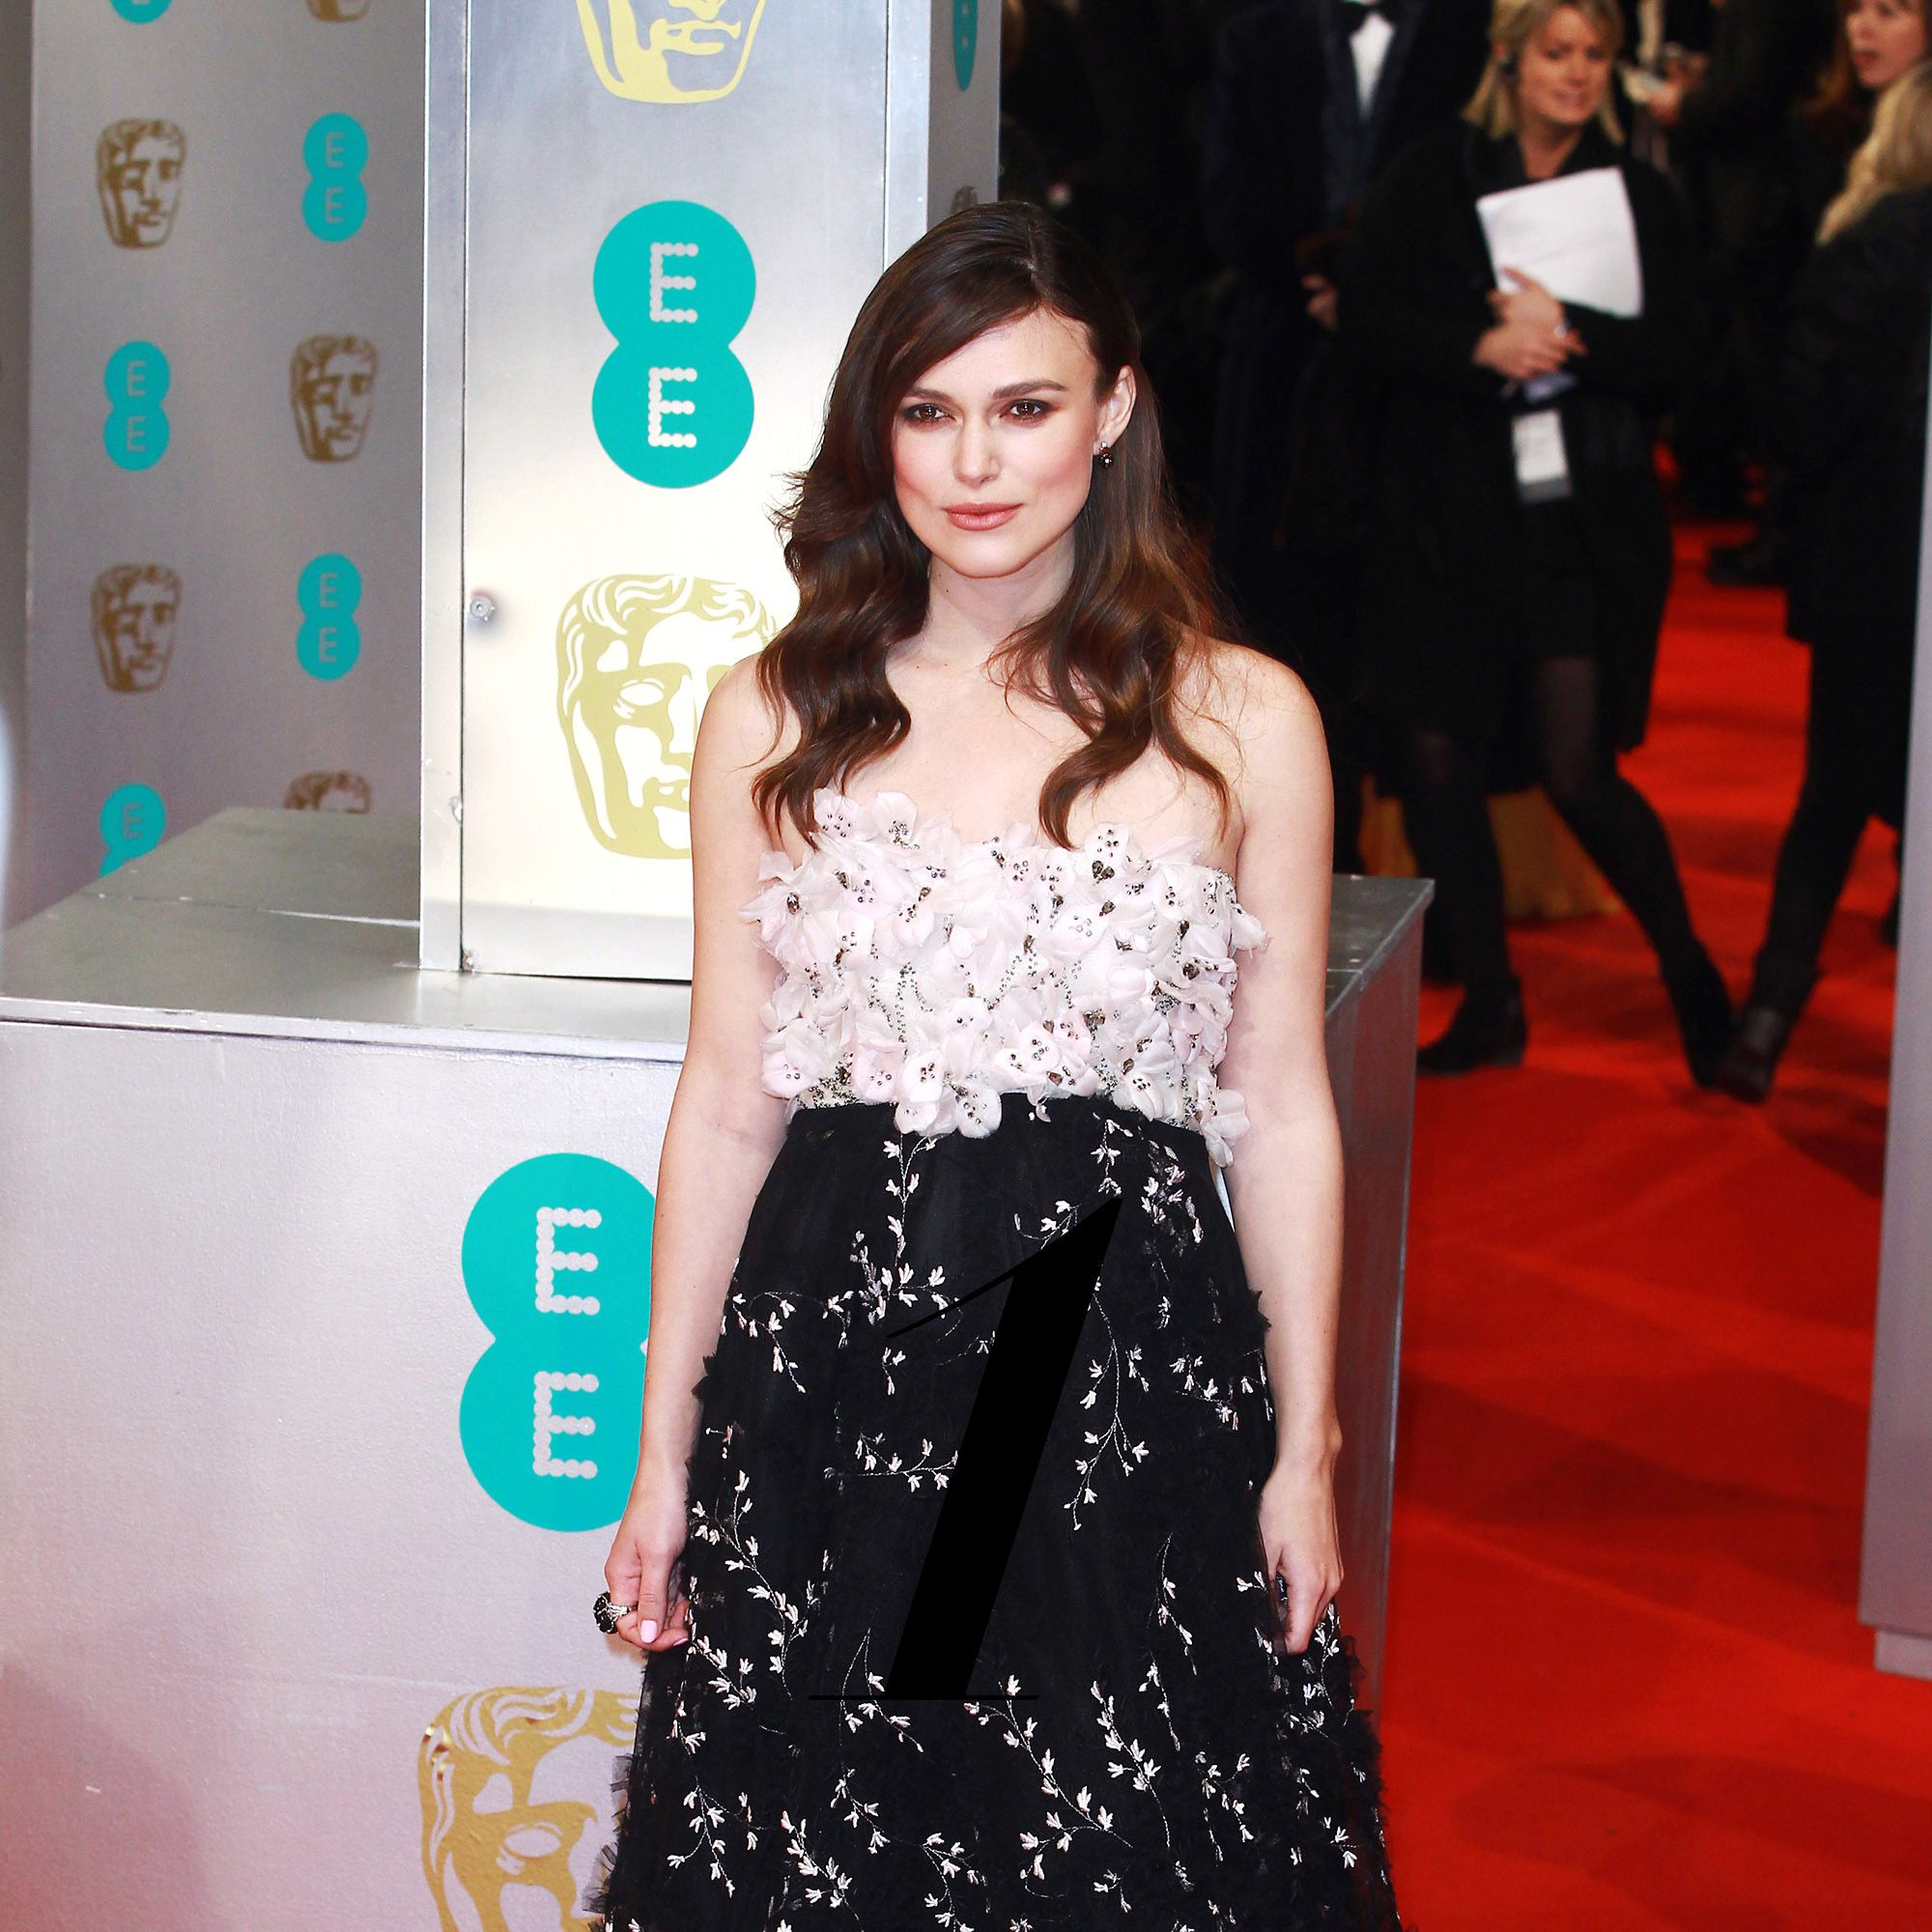 LONDON, UNITED KINGDOM - FEBRUARY 08: Keira Knightley attends the EE British Academy Film Awards  at The Royal Opera House on February 8, 2015 in London, England. (Photo by Fred Duval/FilmMagic)